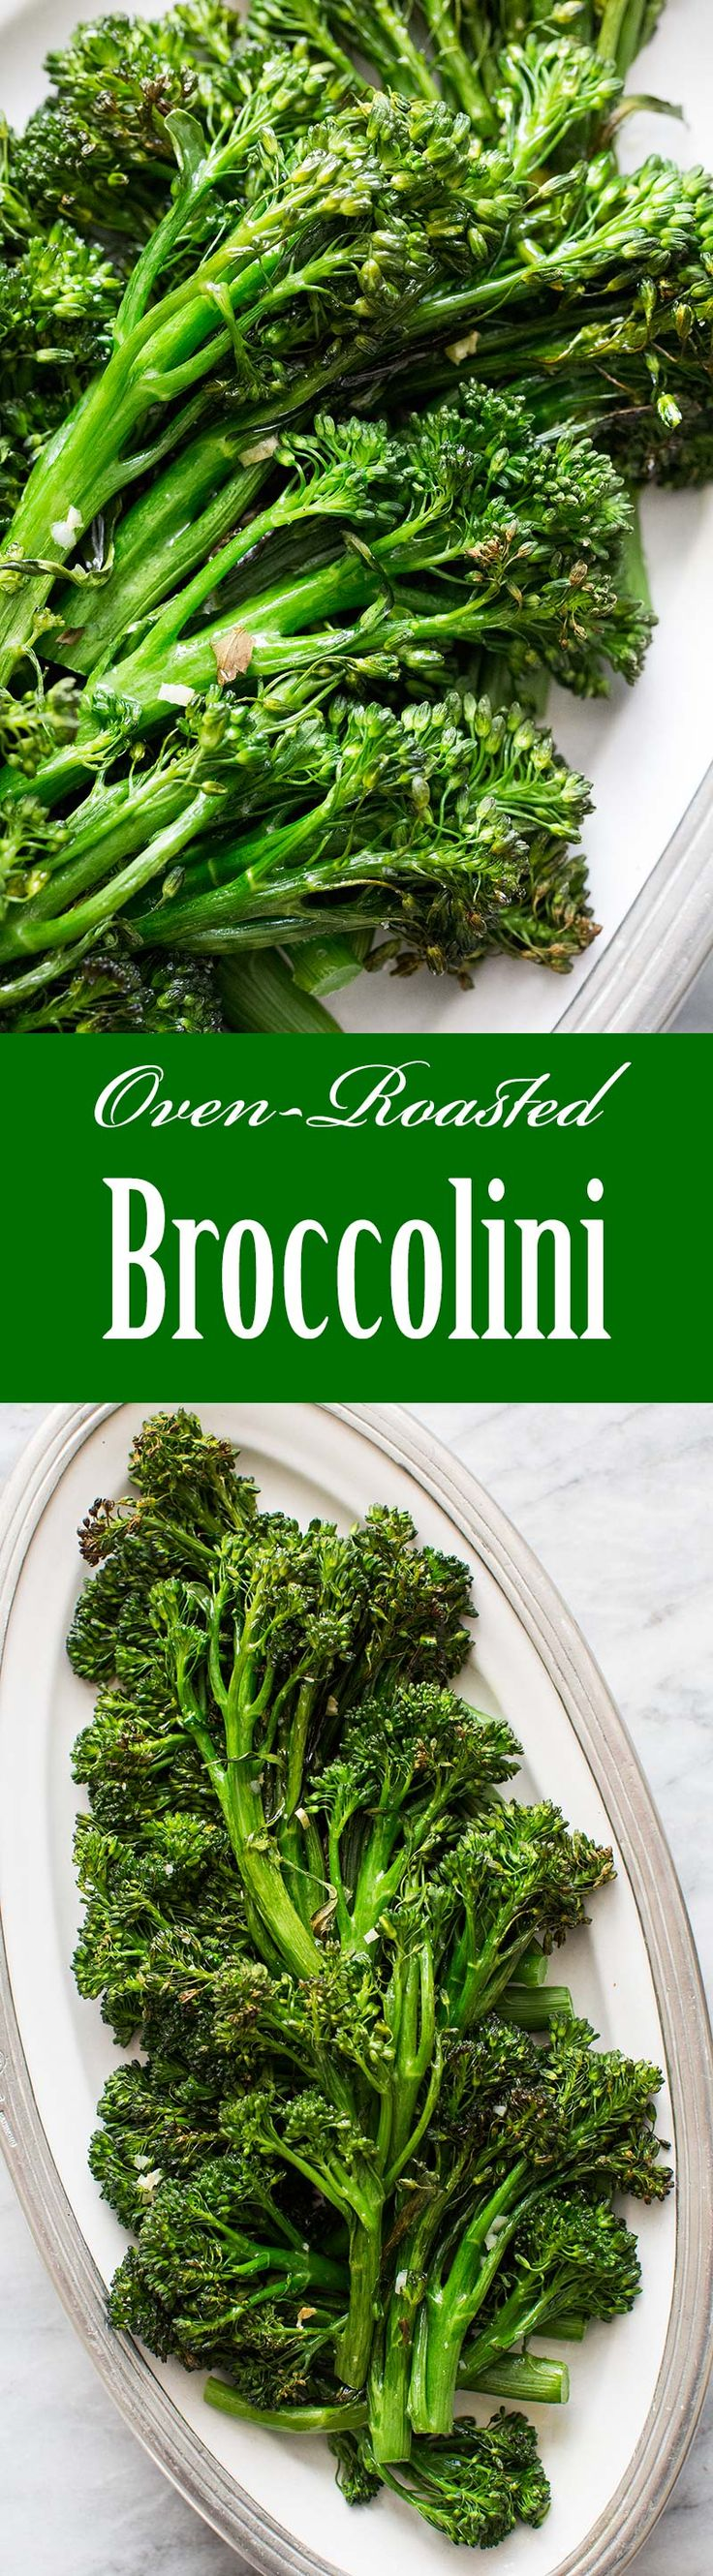 Easy-to-make roasted broccolini! Healthy, paleo, and gluten-free. On SimplyRecipes.com